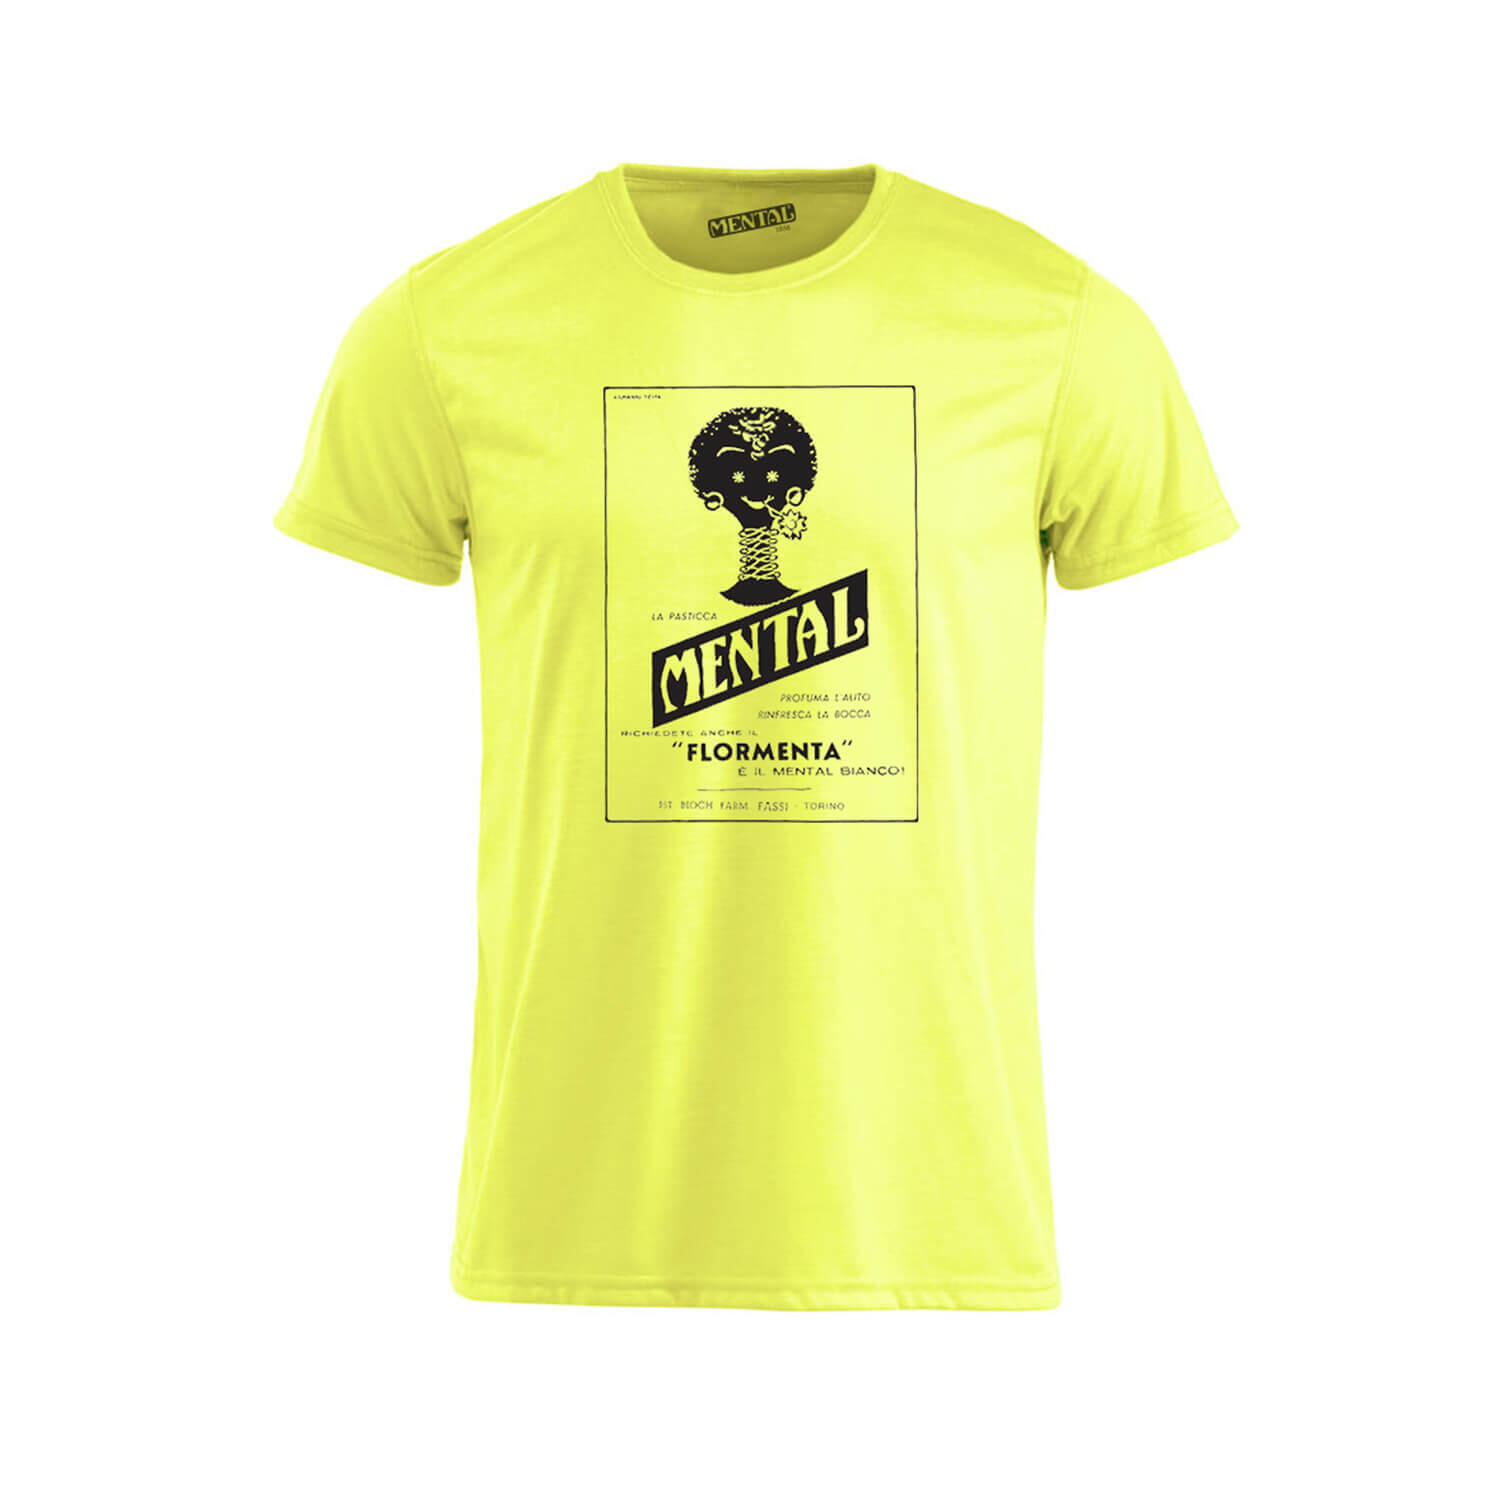 T-shirt neon yellow Vintage Mental - size XL - T-shirt